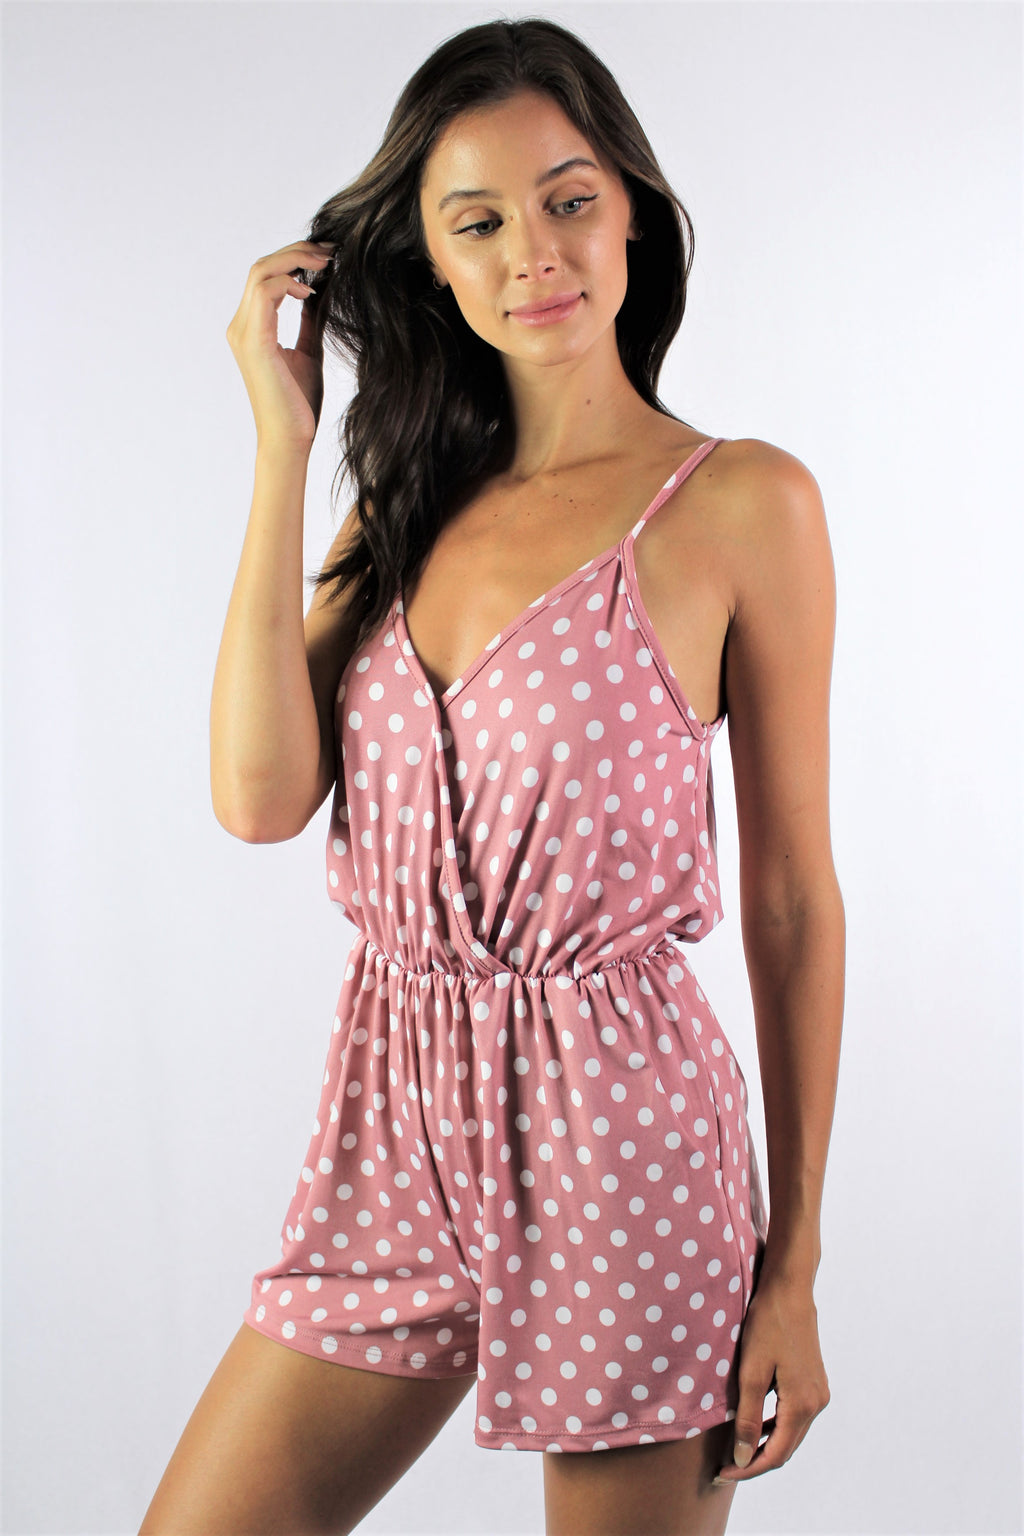 Women's Strappy Polka Dot Romper with Pockets *